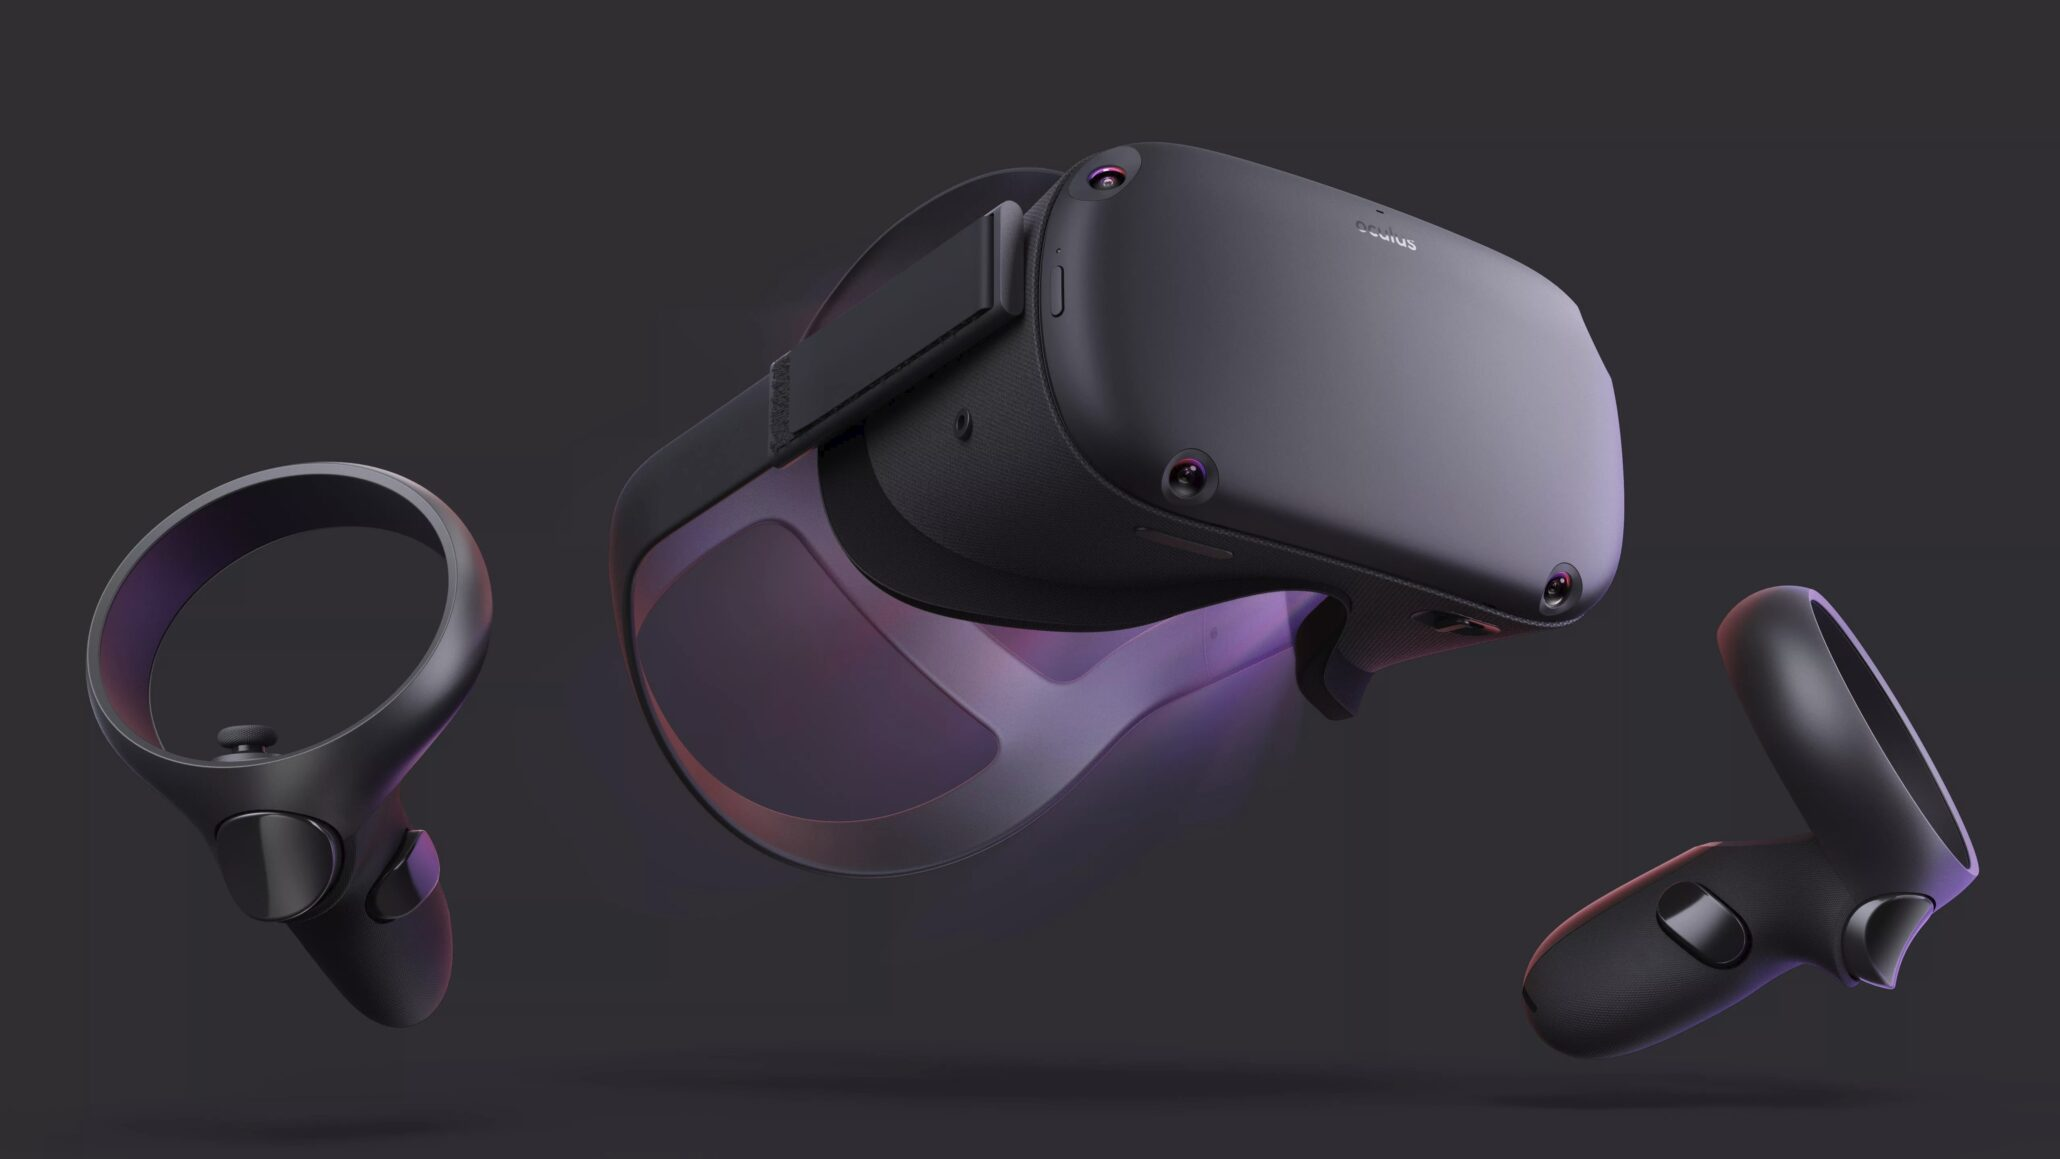 Oculus is Forcing the Removal of Steam VR from Oculus Quest App